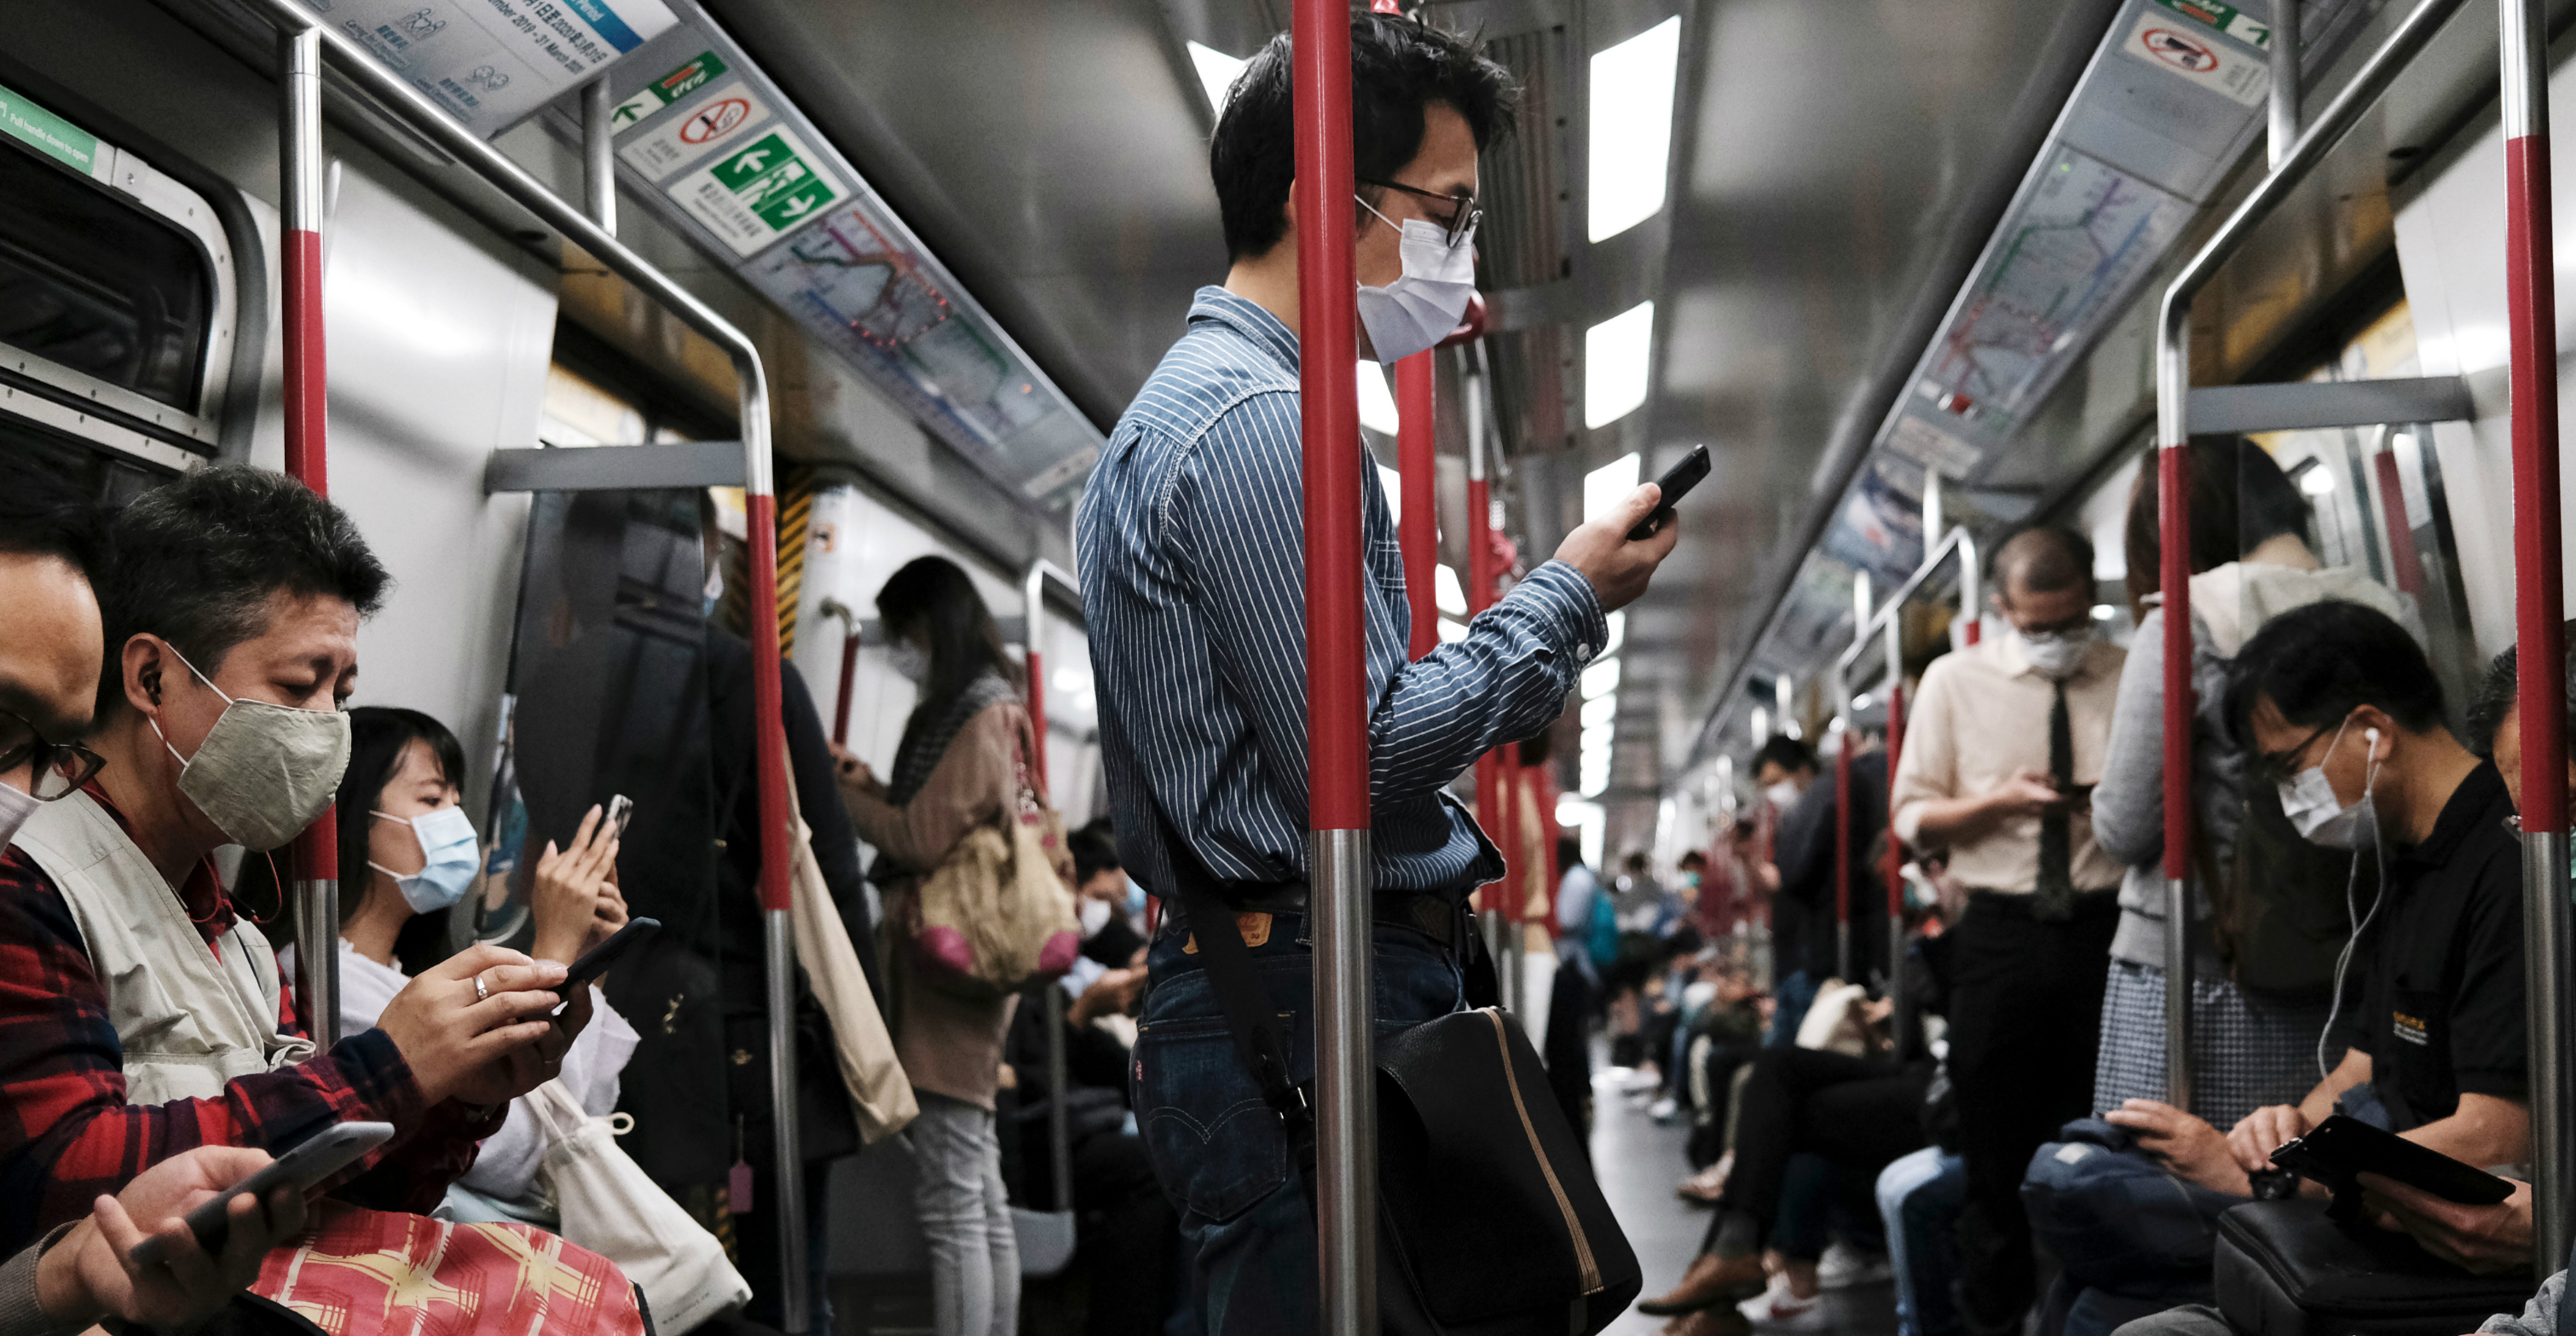 Passengers wear protective masks aboard an MTR train. Hong Kong people are more prepared to handle the coronavirus outbreak in view of their experience with the SARS epidemic in 2003. Photo: Reuters